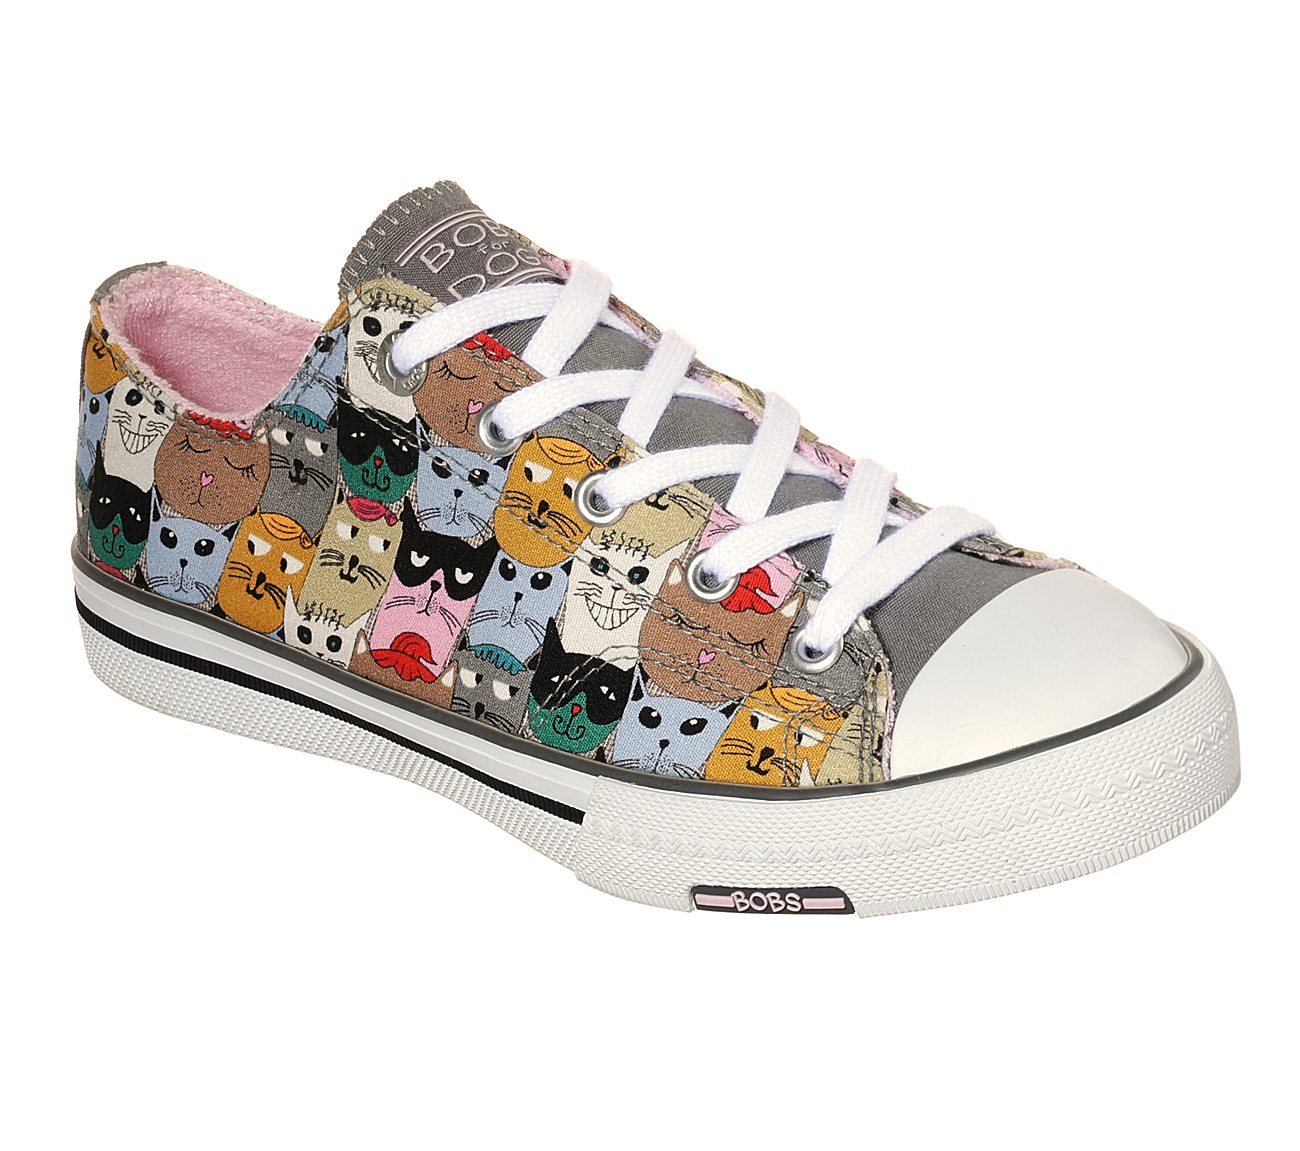 Womens Bobs Shoes